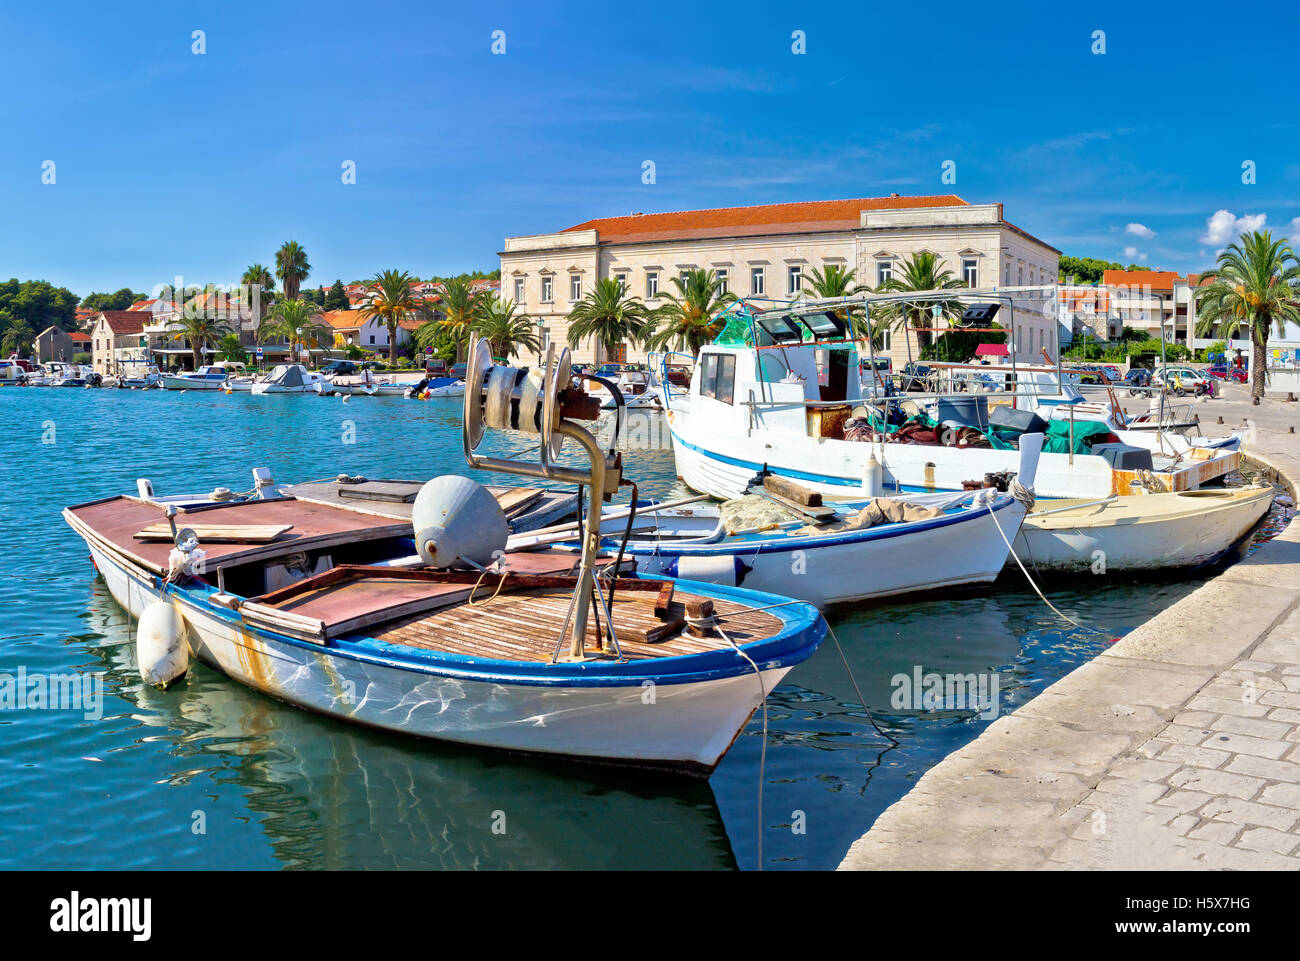 Fishing boat in Stari Grad harbor, Island of Hvar, Croatia - Stock Image